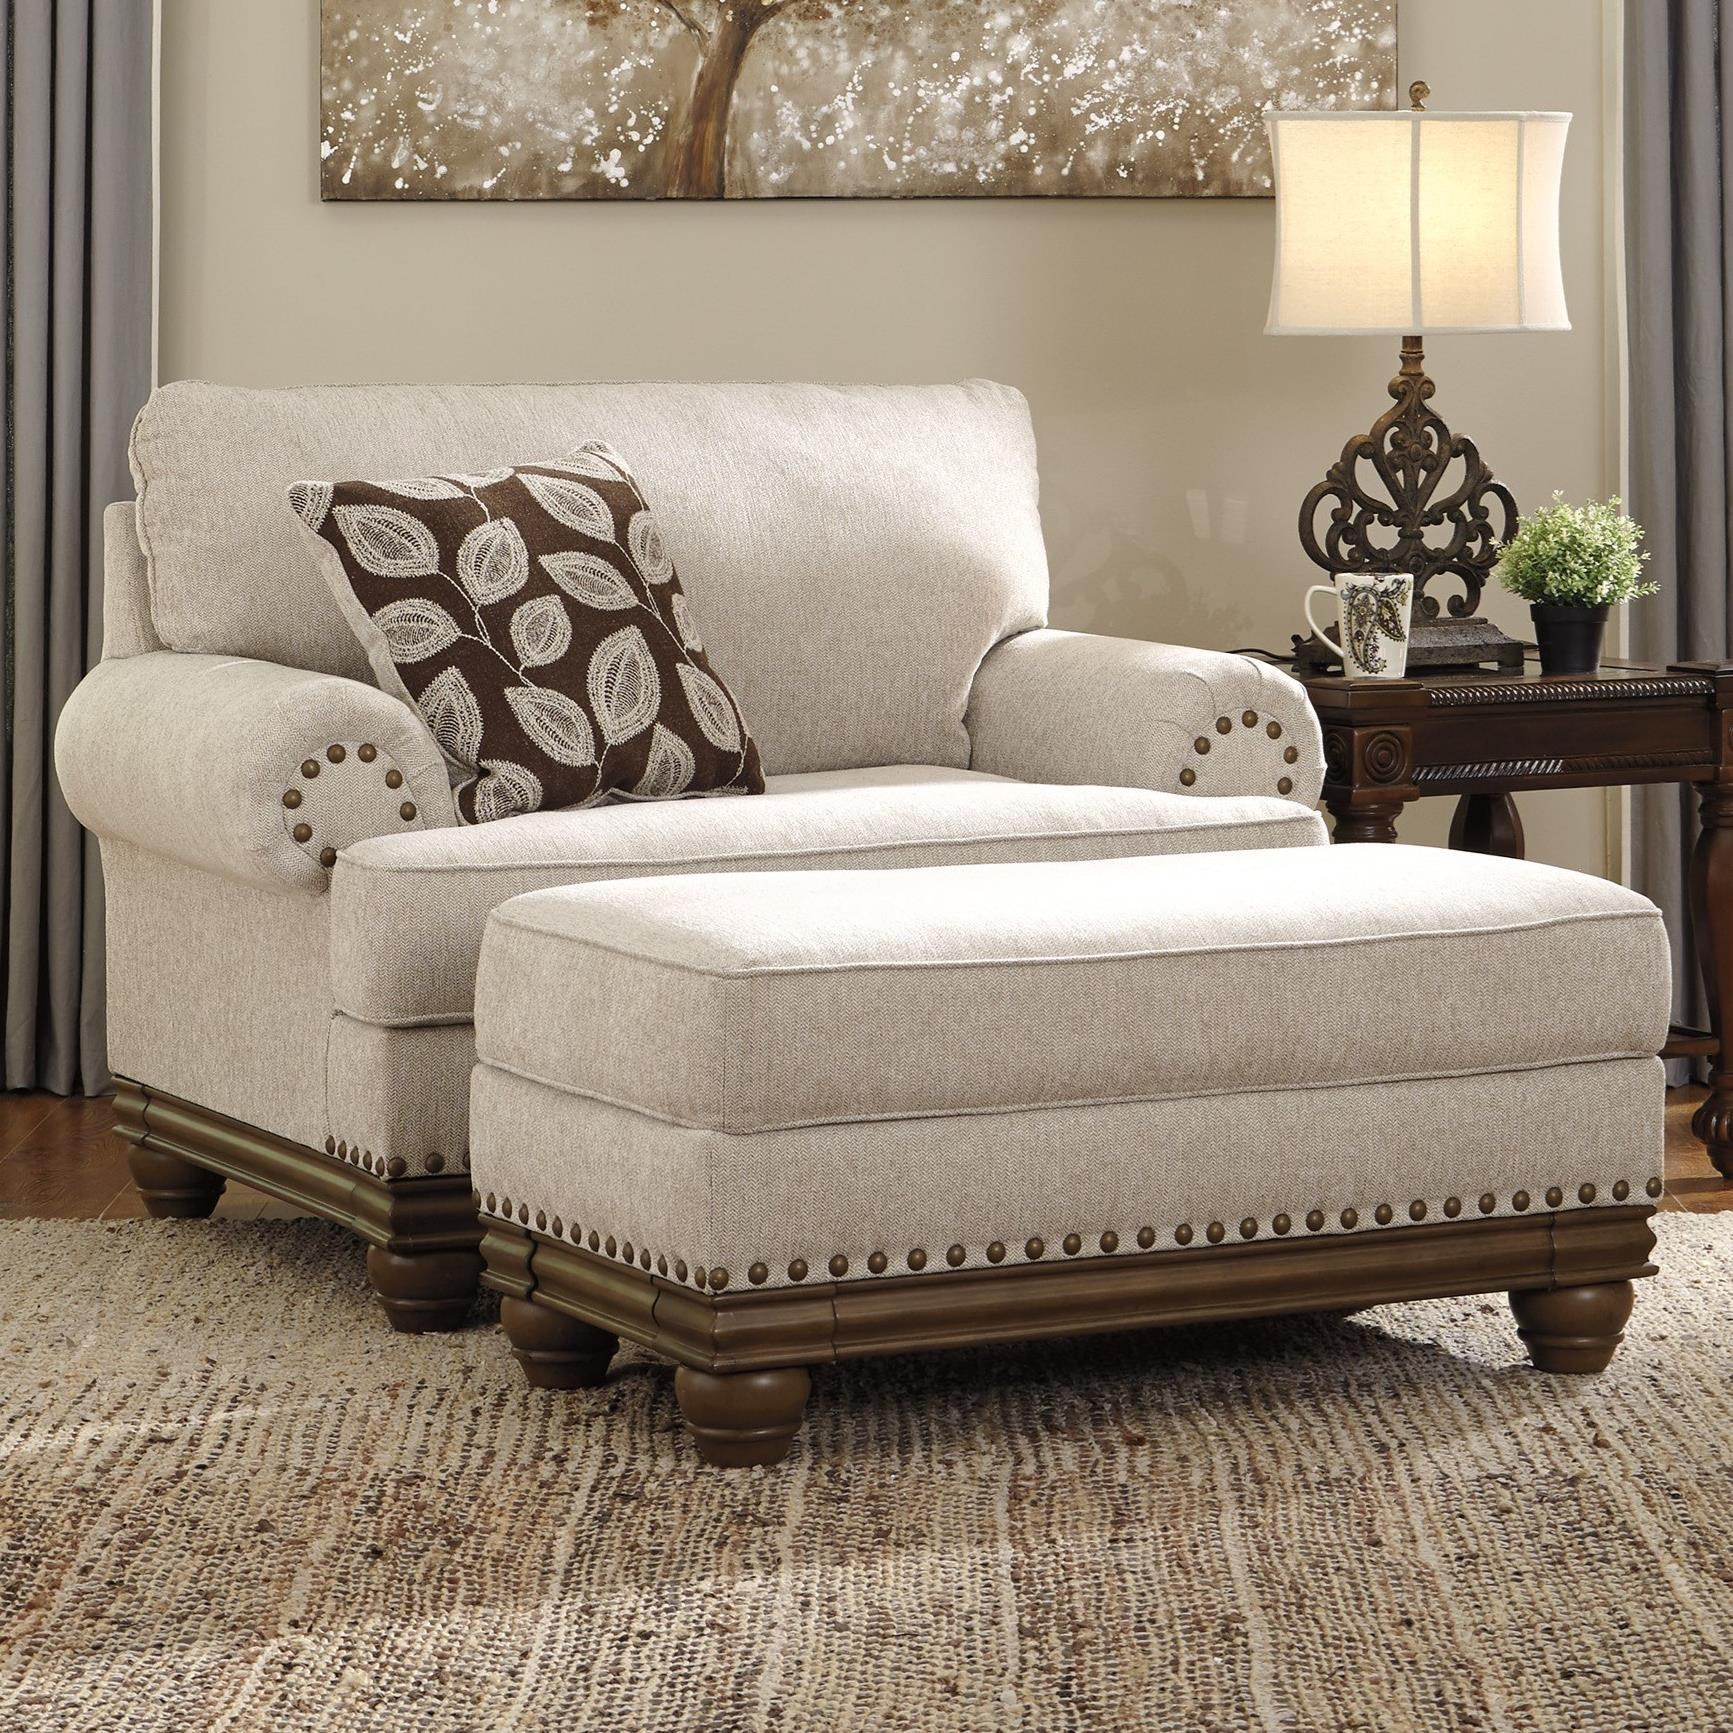 Transitional Chair and a Half & Ottoman